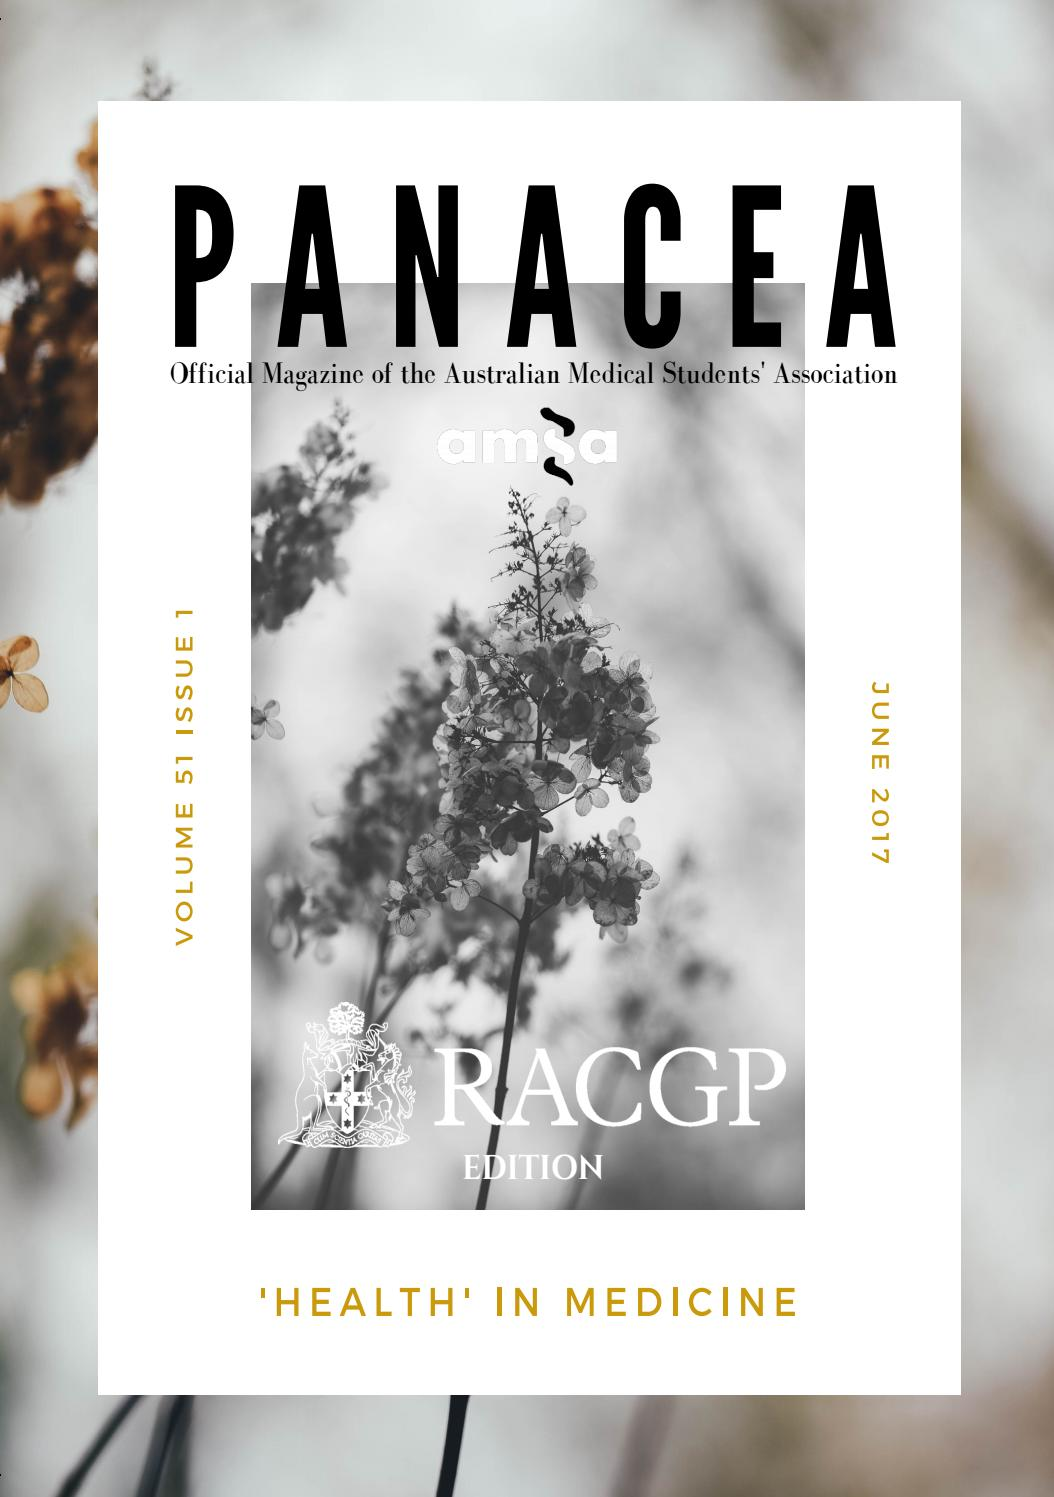 Executive Function Not Panacea For >> Amsa Panacea Volume 51 Issue 1 2017 By The Australian Medical